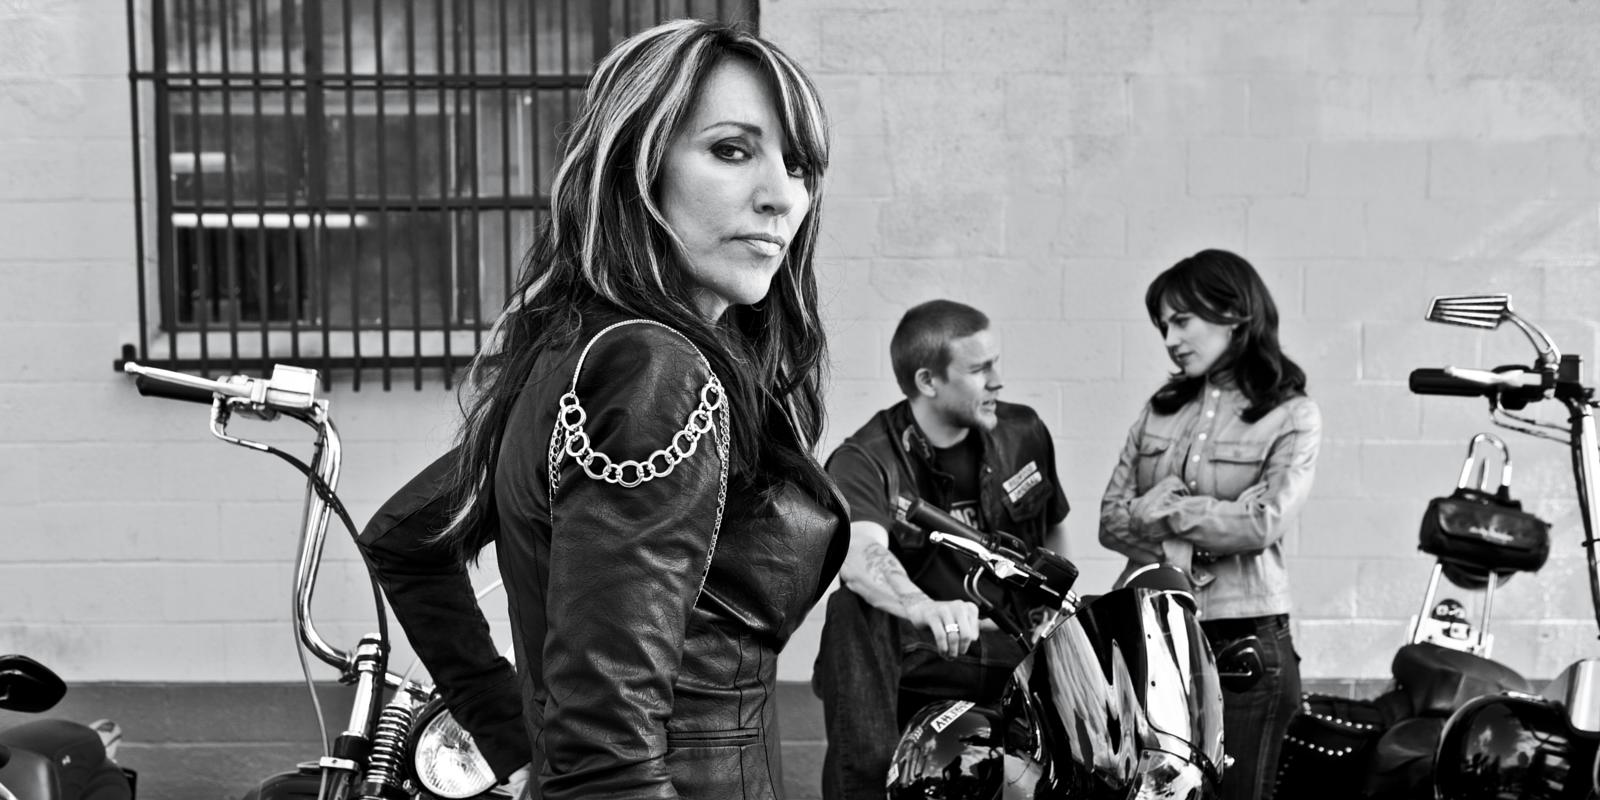 Katey Sagal poses besides bikes on Sons of Anarchy